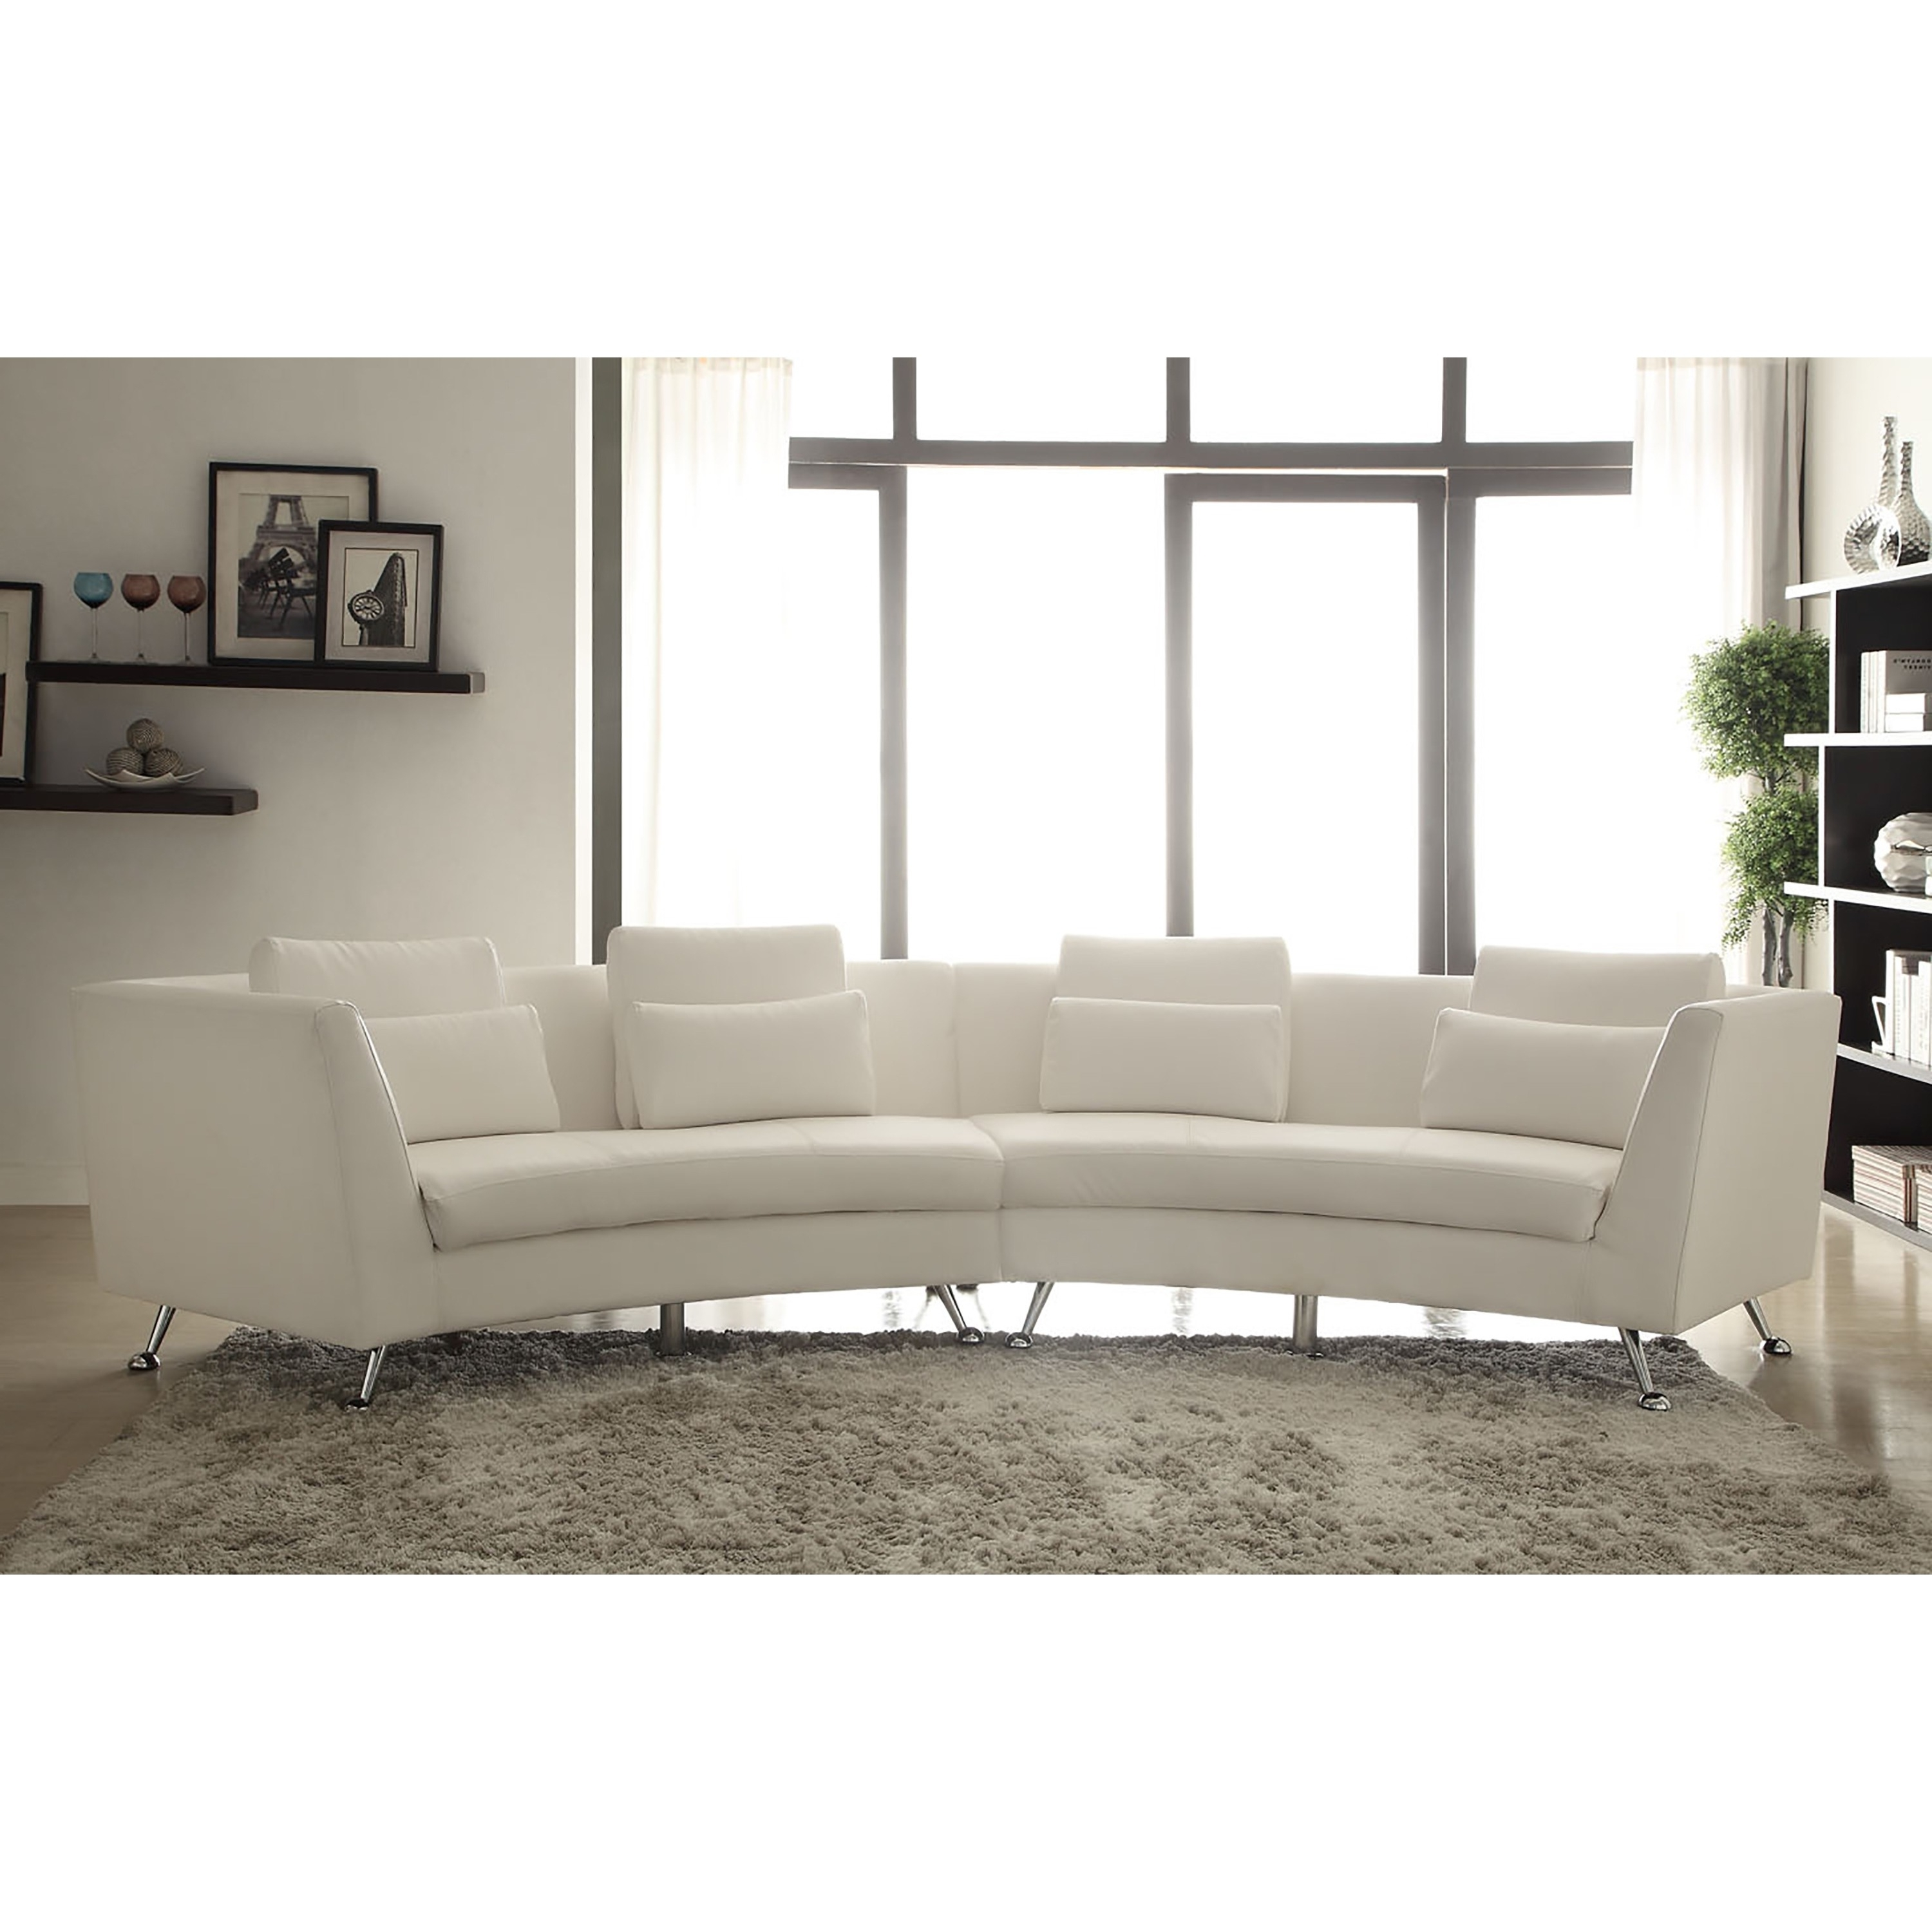 Curved Sectional Sofas With Recliner In Widely Used Furniture : Small Scale Sectional Sofas Reclining Sofa In (View 6 of 20)